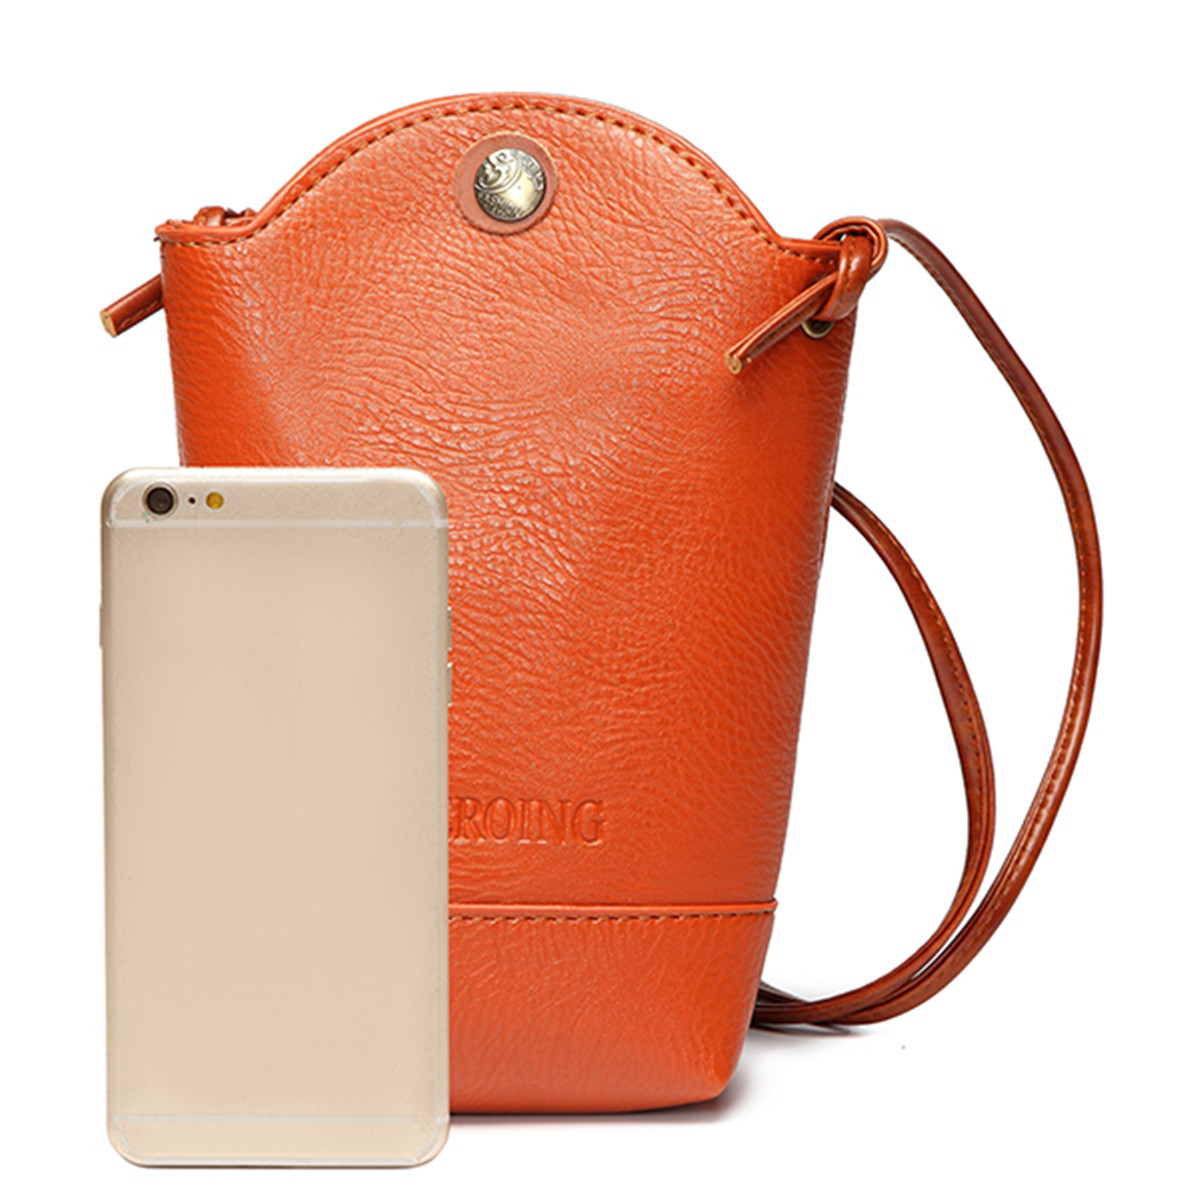 Buy Universal PU Leather Mobile Phone Bag for iPhone 5/5S Samsung Galaxy Note 2/3 S5 S4